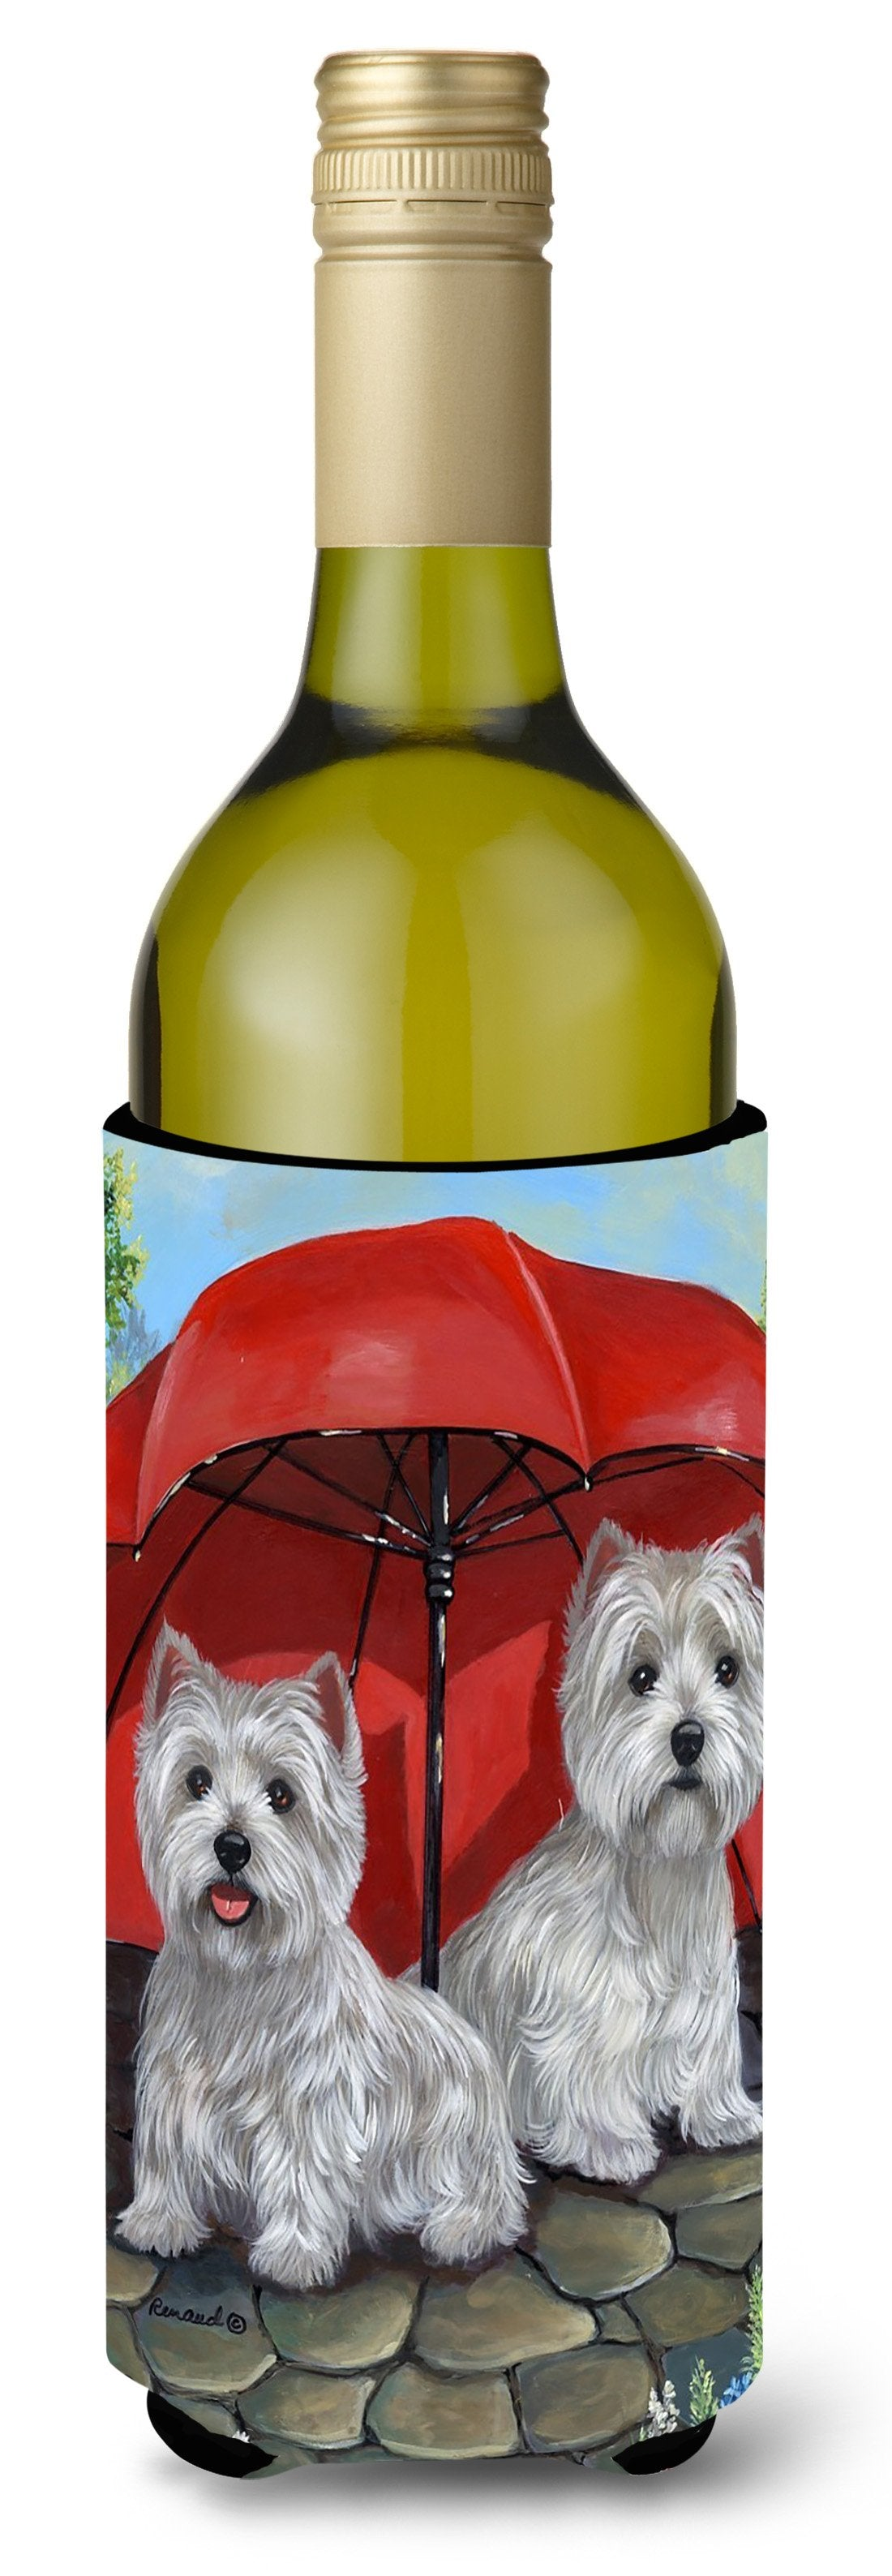 Westie April Showers Wine Bottle Hugger PPP3198LITERK by Caroline's Treasures